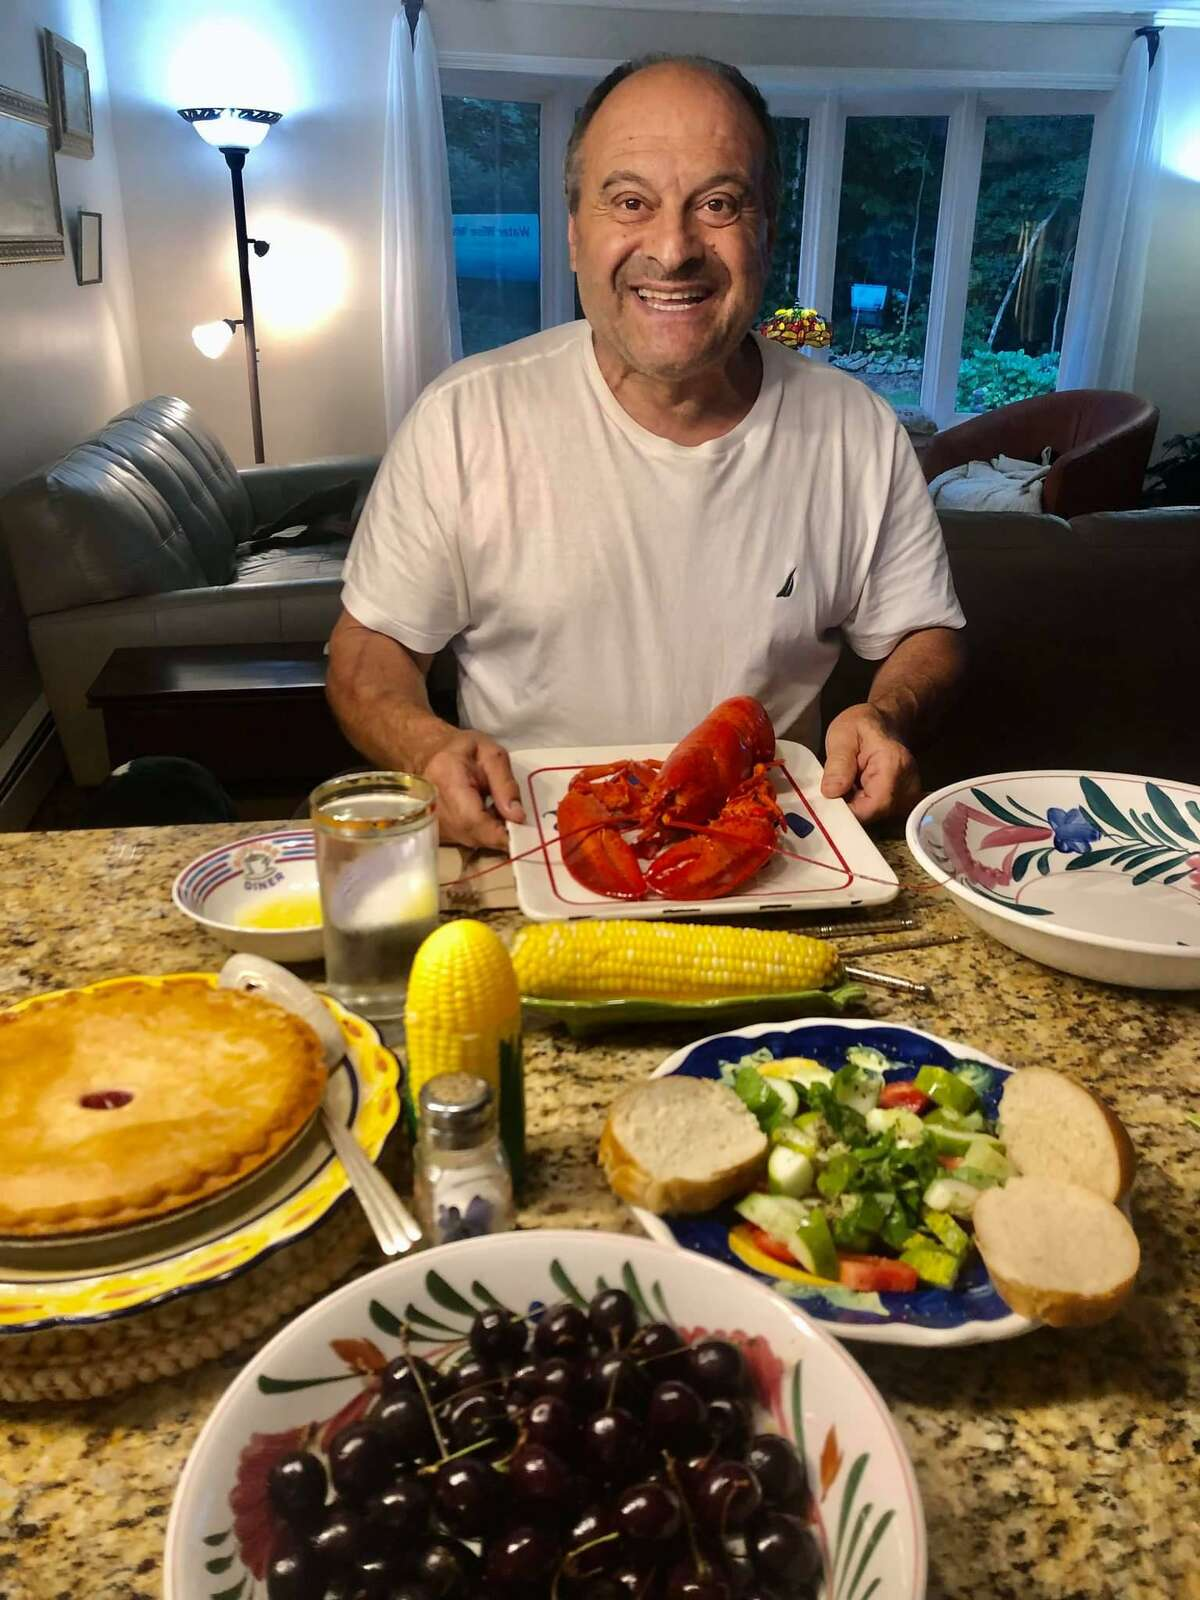 """For Labor Day, """"Our Pete,"""" as the Facebook post reads, had lobster, corn on the cob, fresh cucumber and tomato salad, cherries and cherry pie for dinner."""